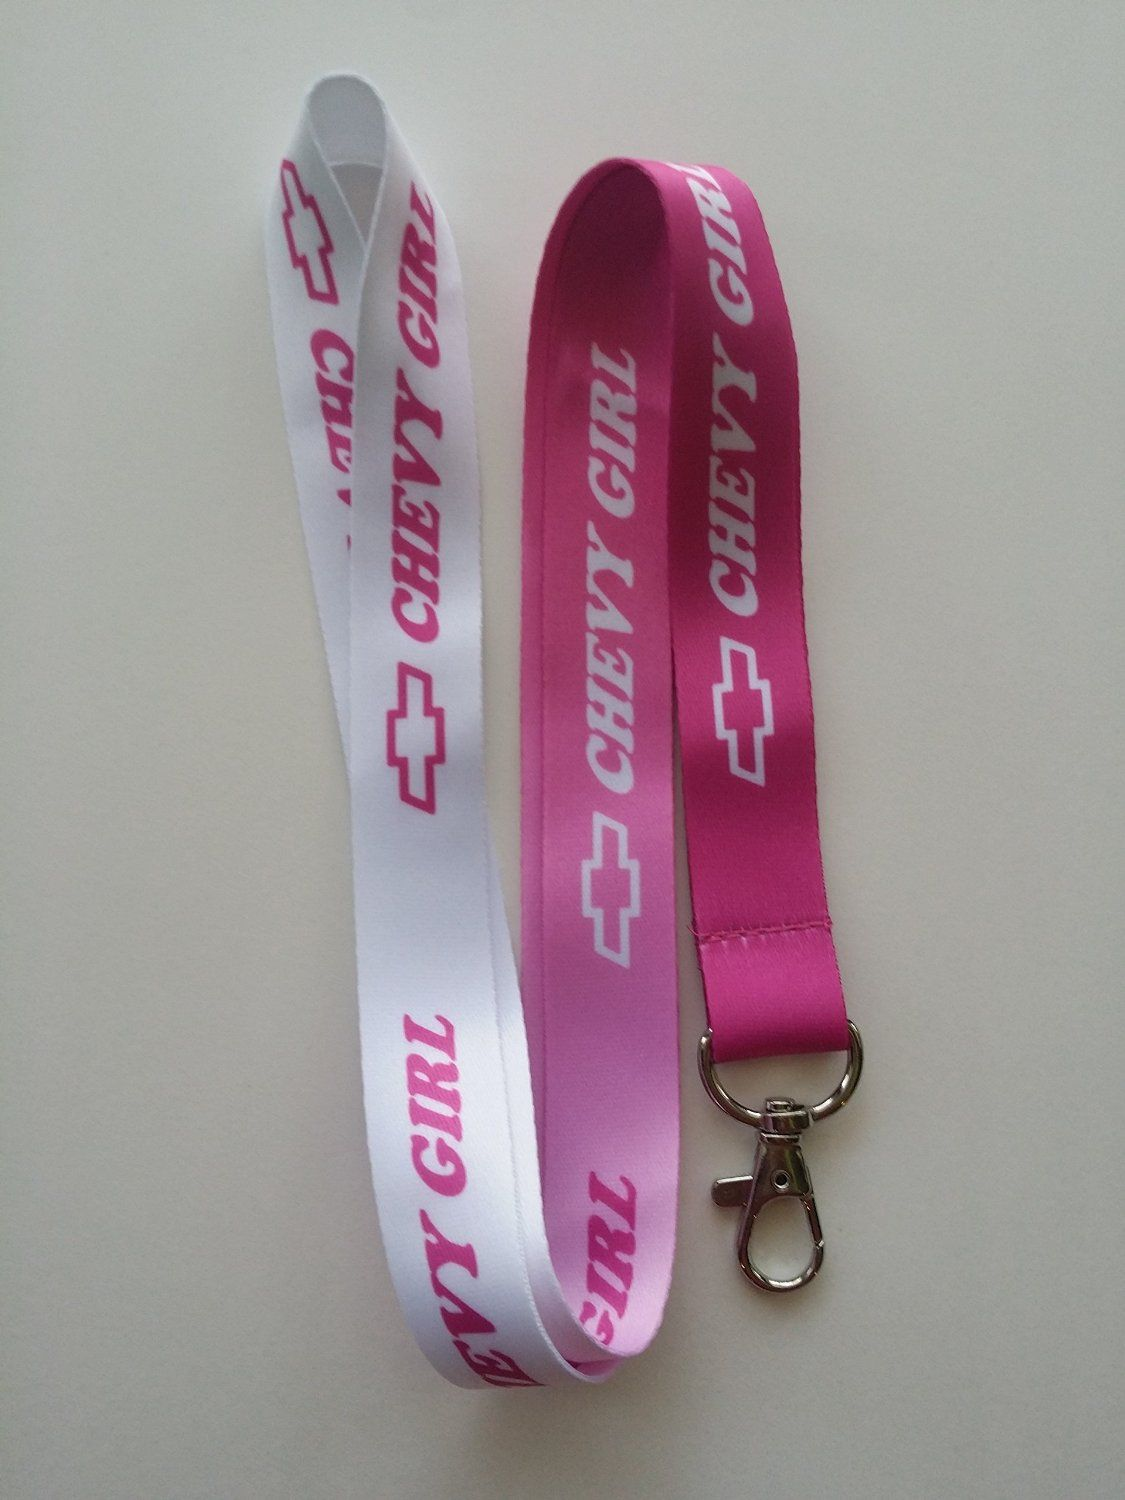 Amazon Com Chevy Girl Pink White Lanyard Office Products Chevy Girl Chevy Silverado Accessories Chevy